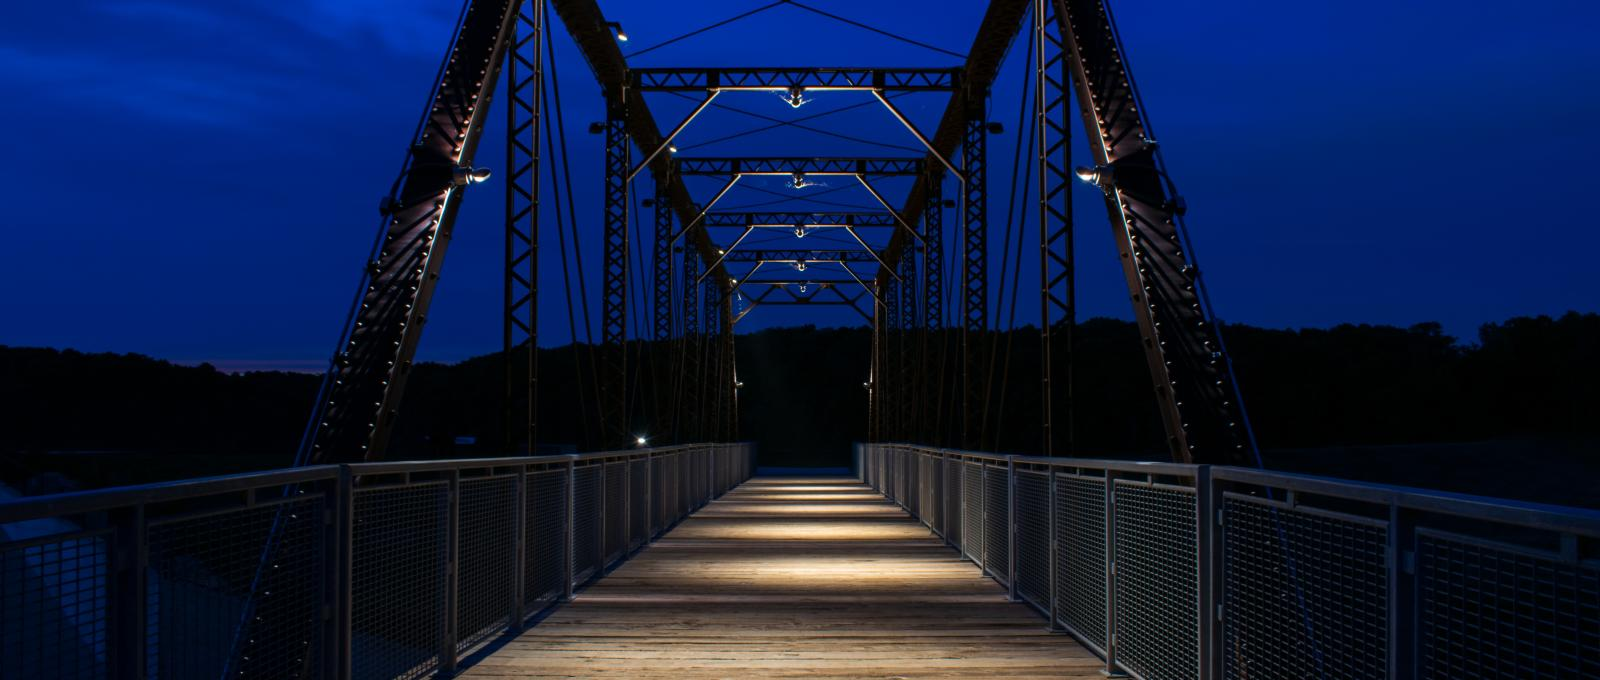 Jurgensen Bridge